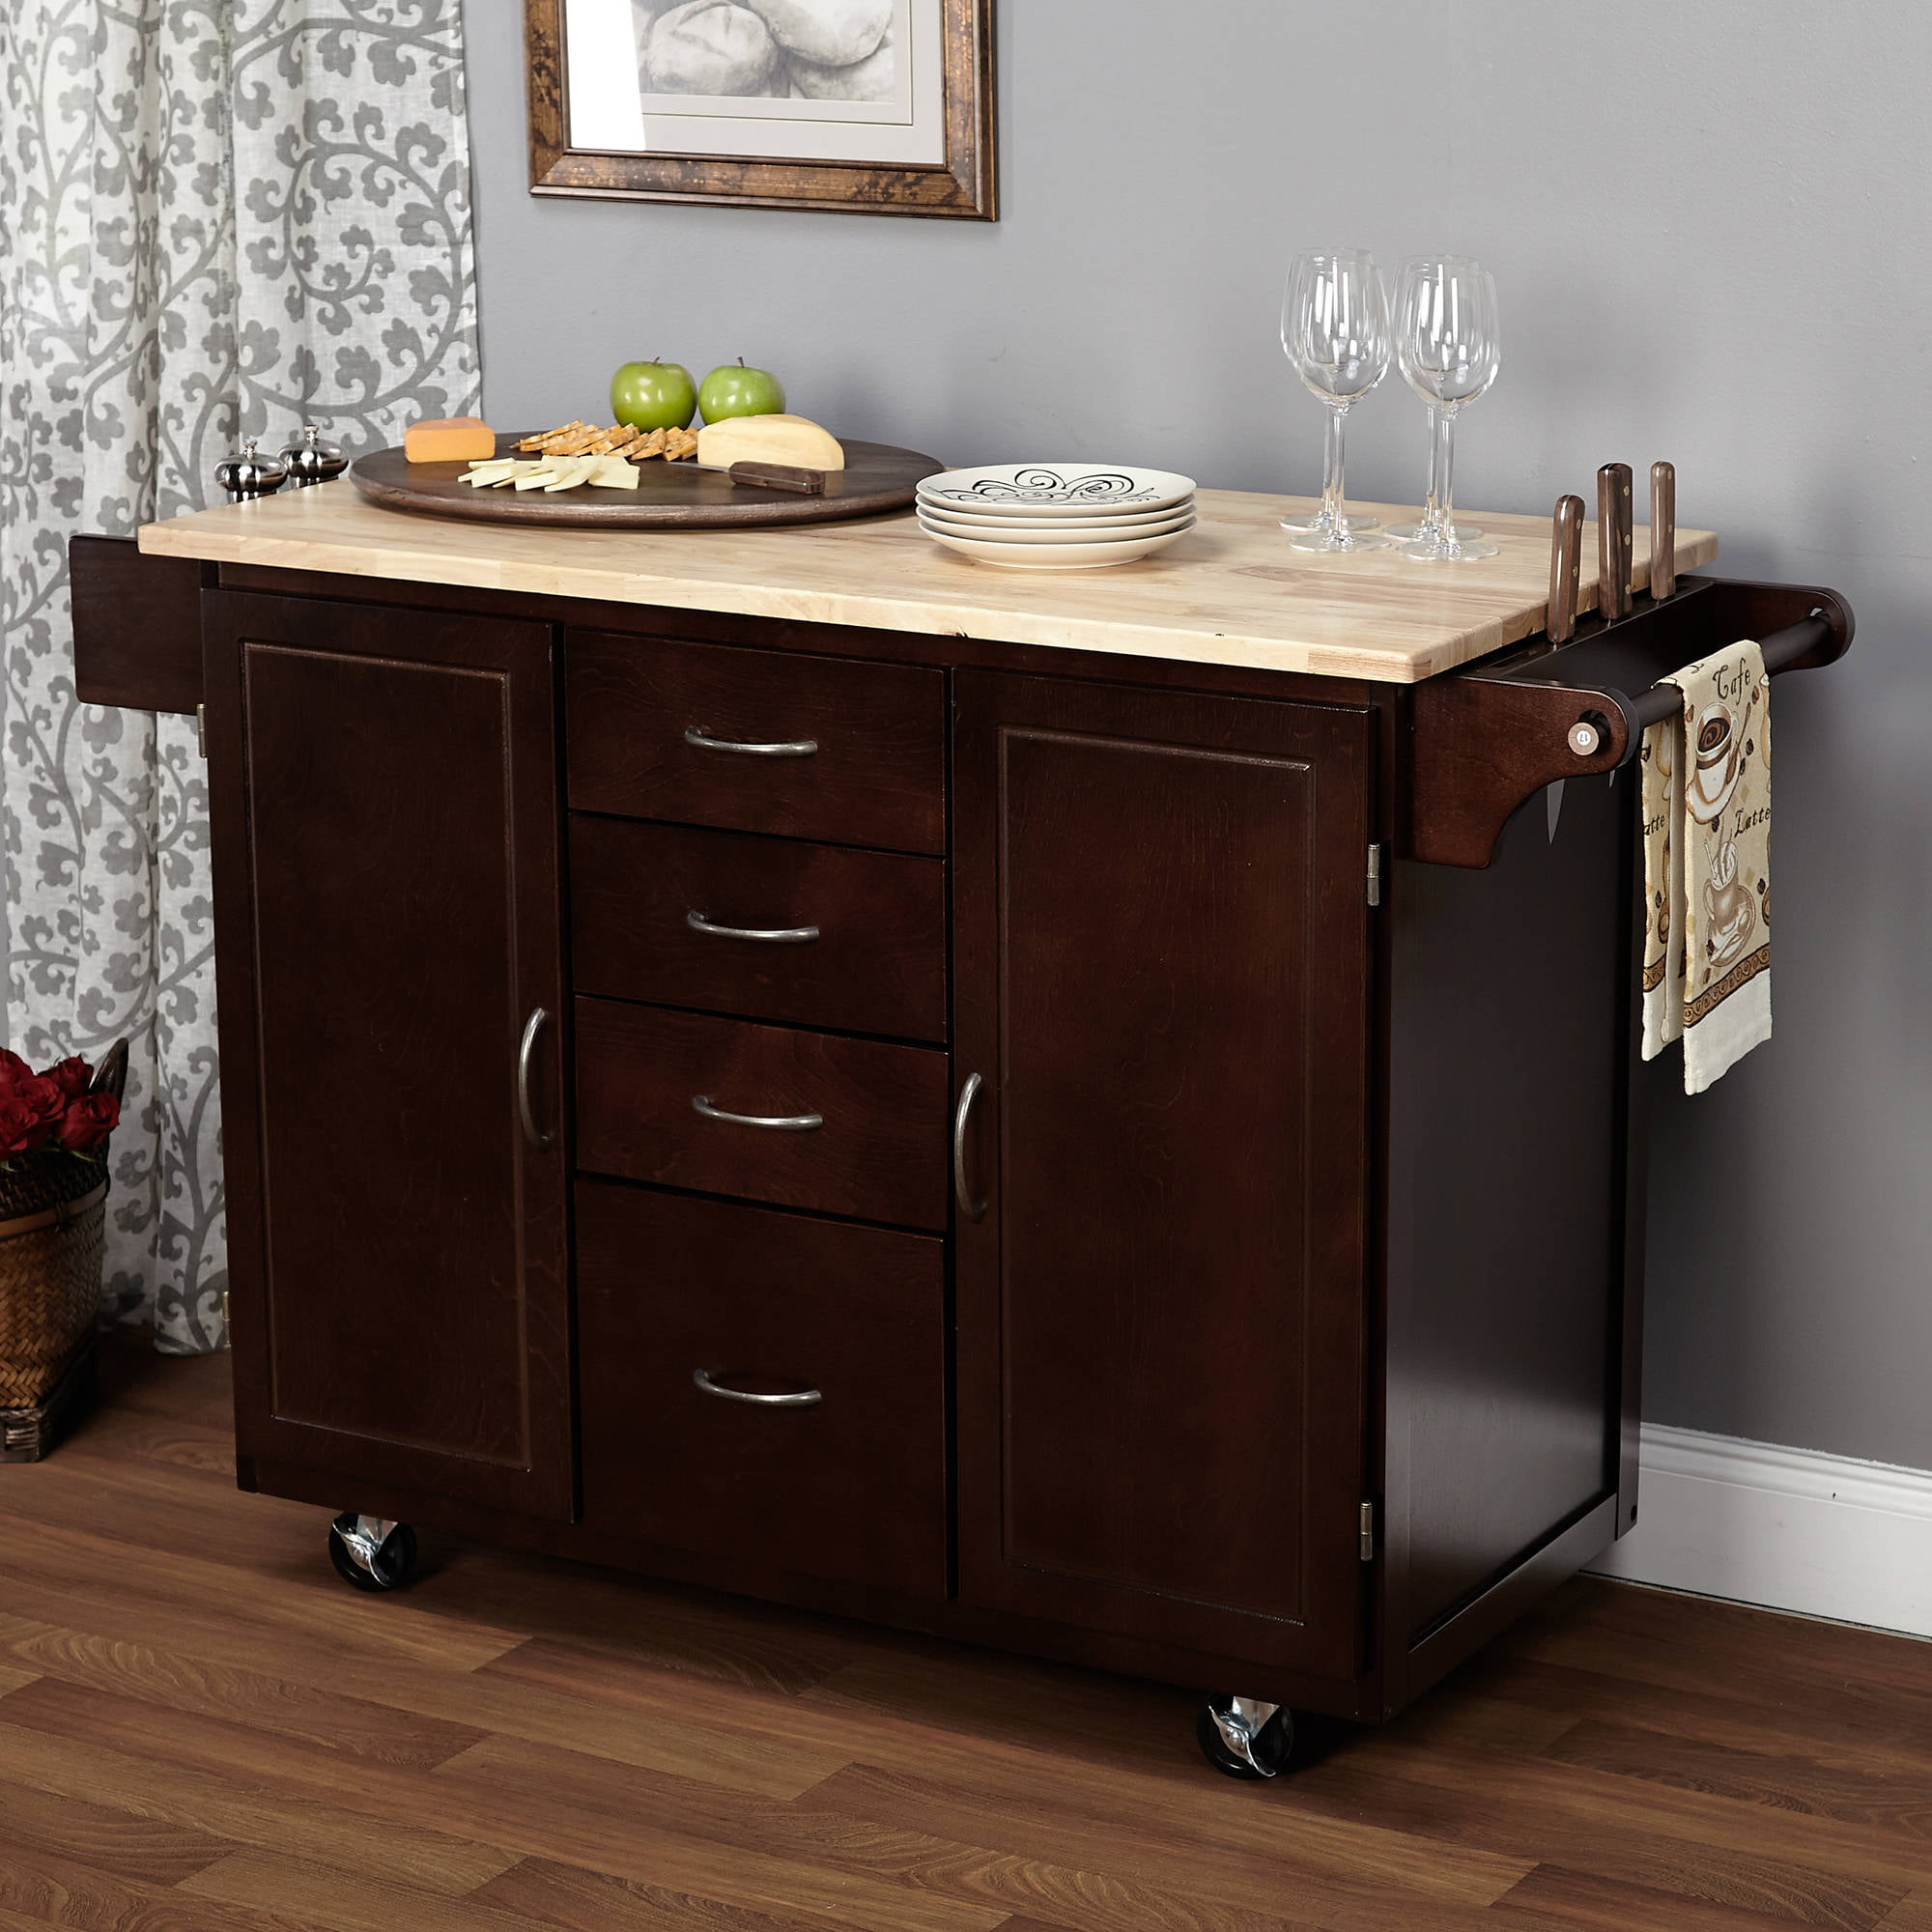 Kitchen Islands And Carts Furniture Home Styles Kitchen Island Walmartcom